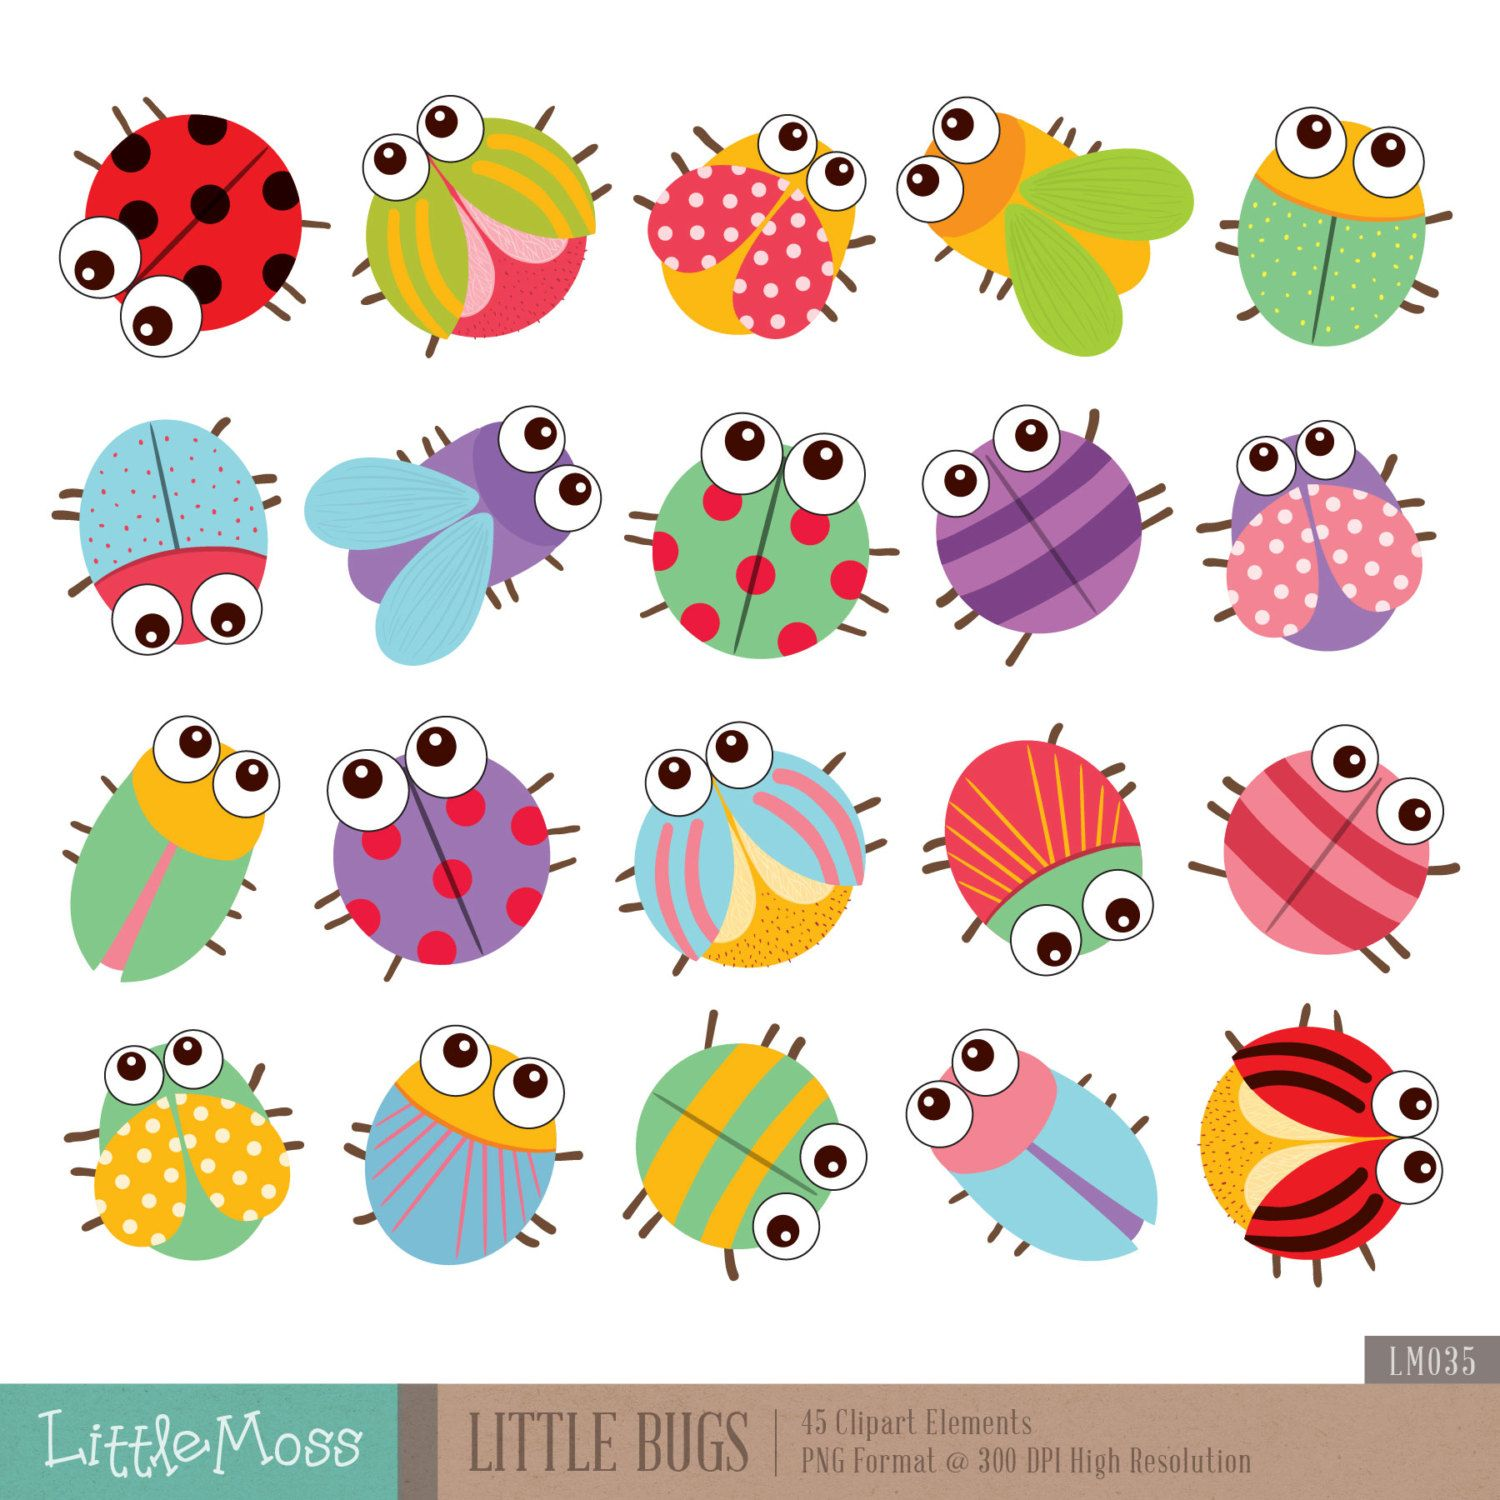 little bugs clipart pinterest etsy rock painting and clip art rh pinterest com bugs clipart f bugs clipart black and white